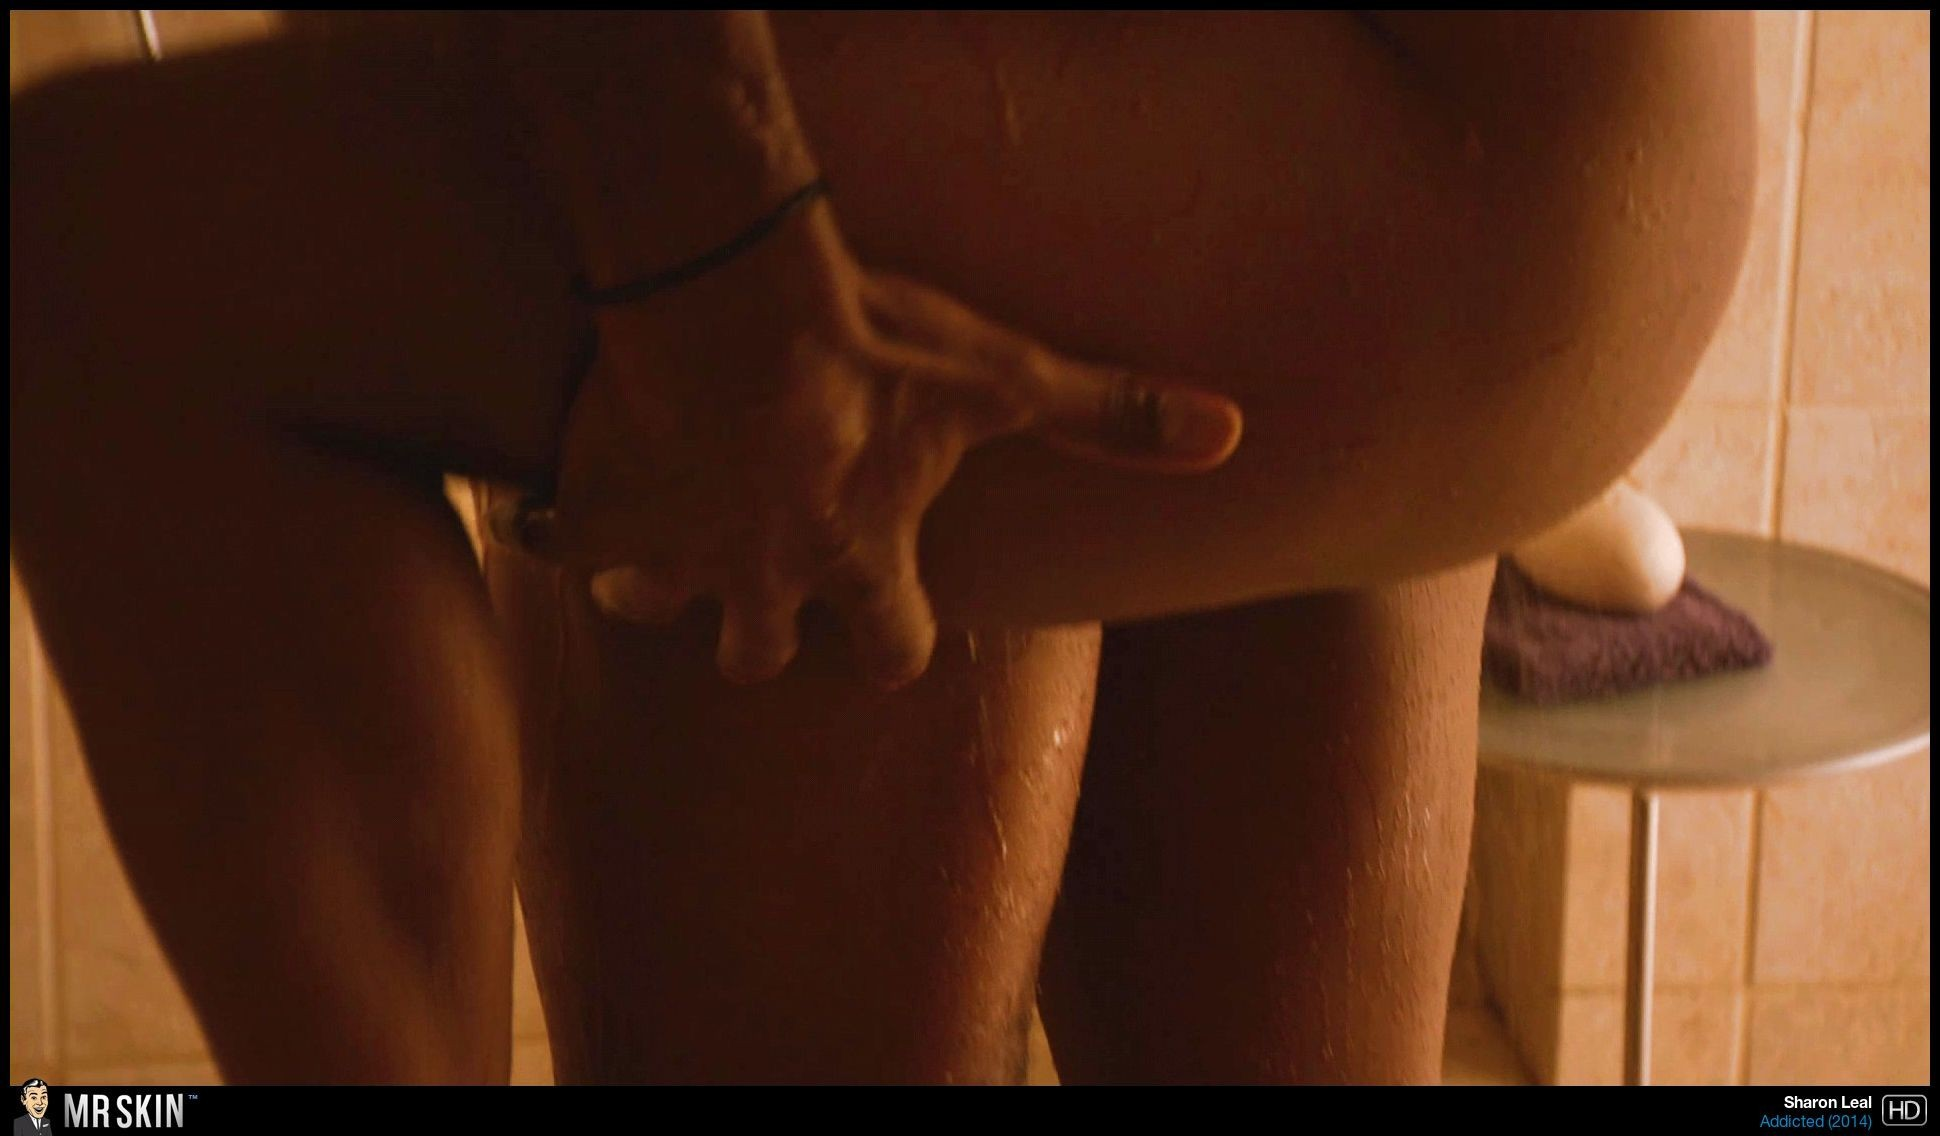 Fce naked sharon leal sex videos fuck and suck